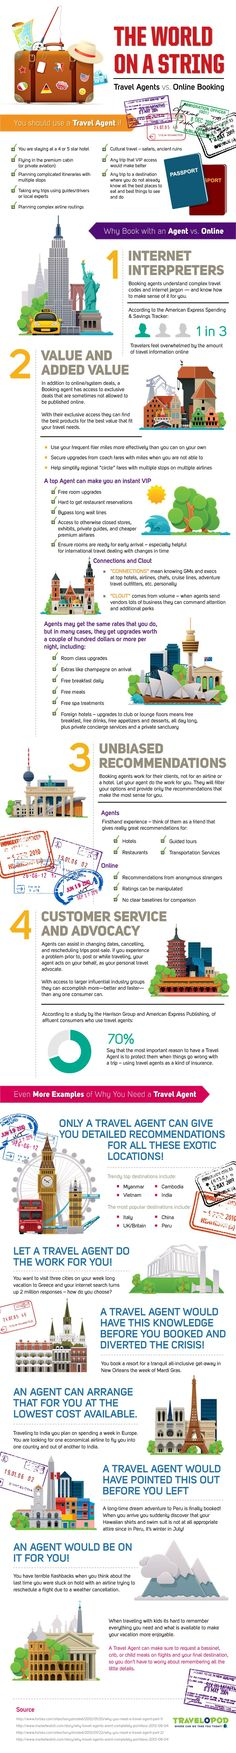 The World on a String: Travel Agent Vs. Online Booking  #infographic #Travel #OnlineBooking